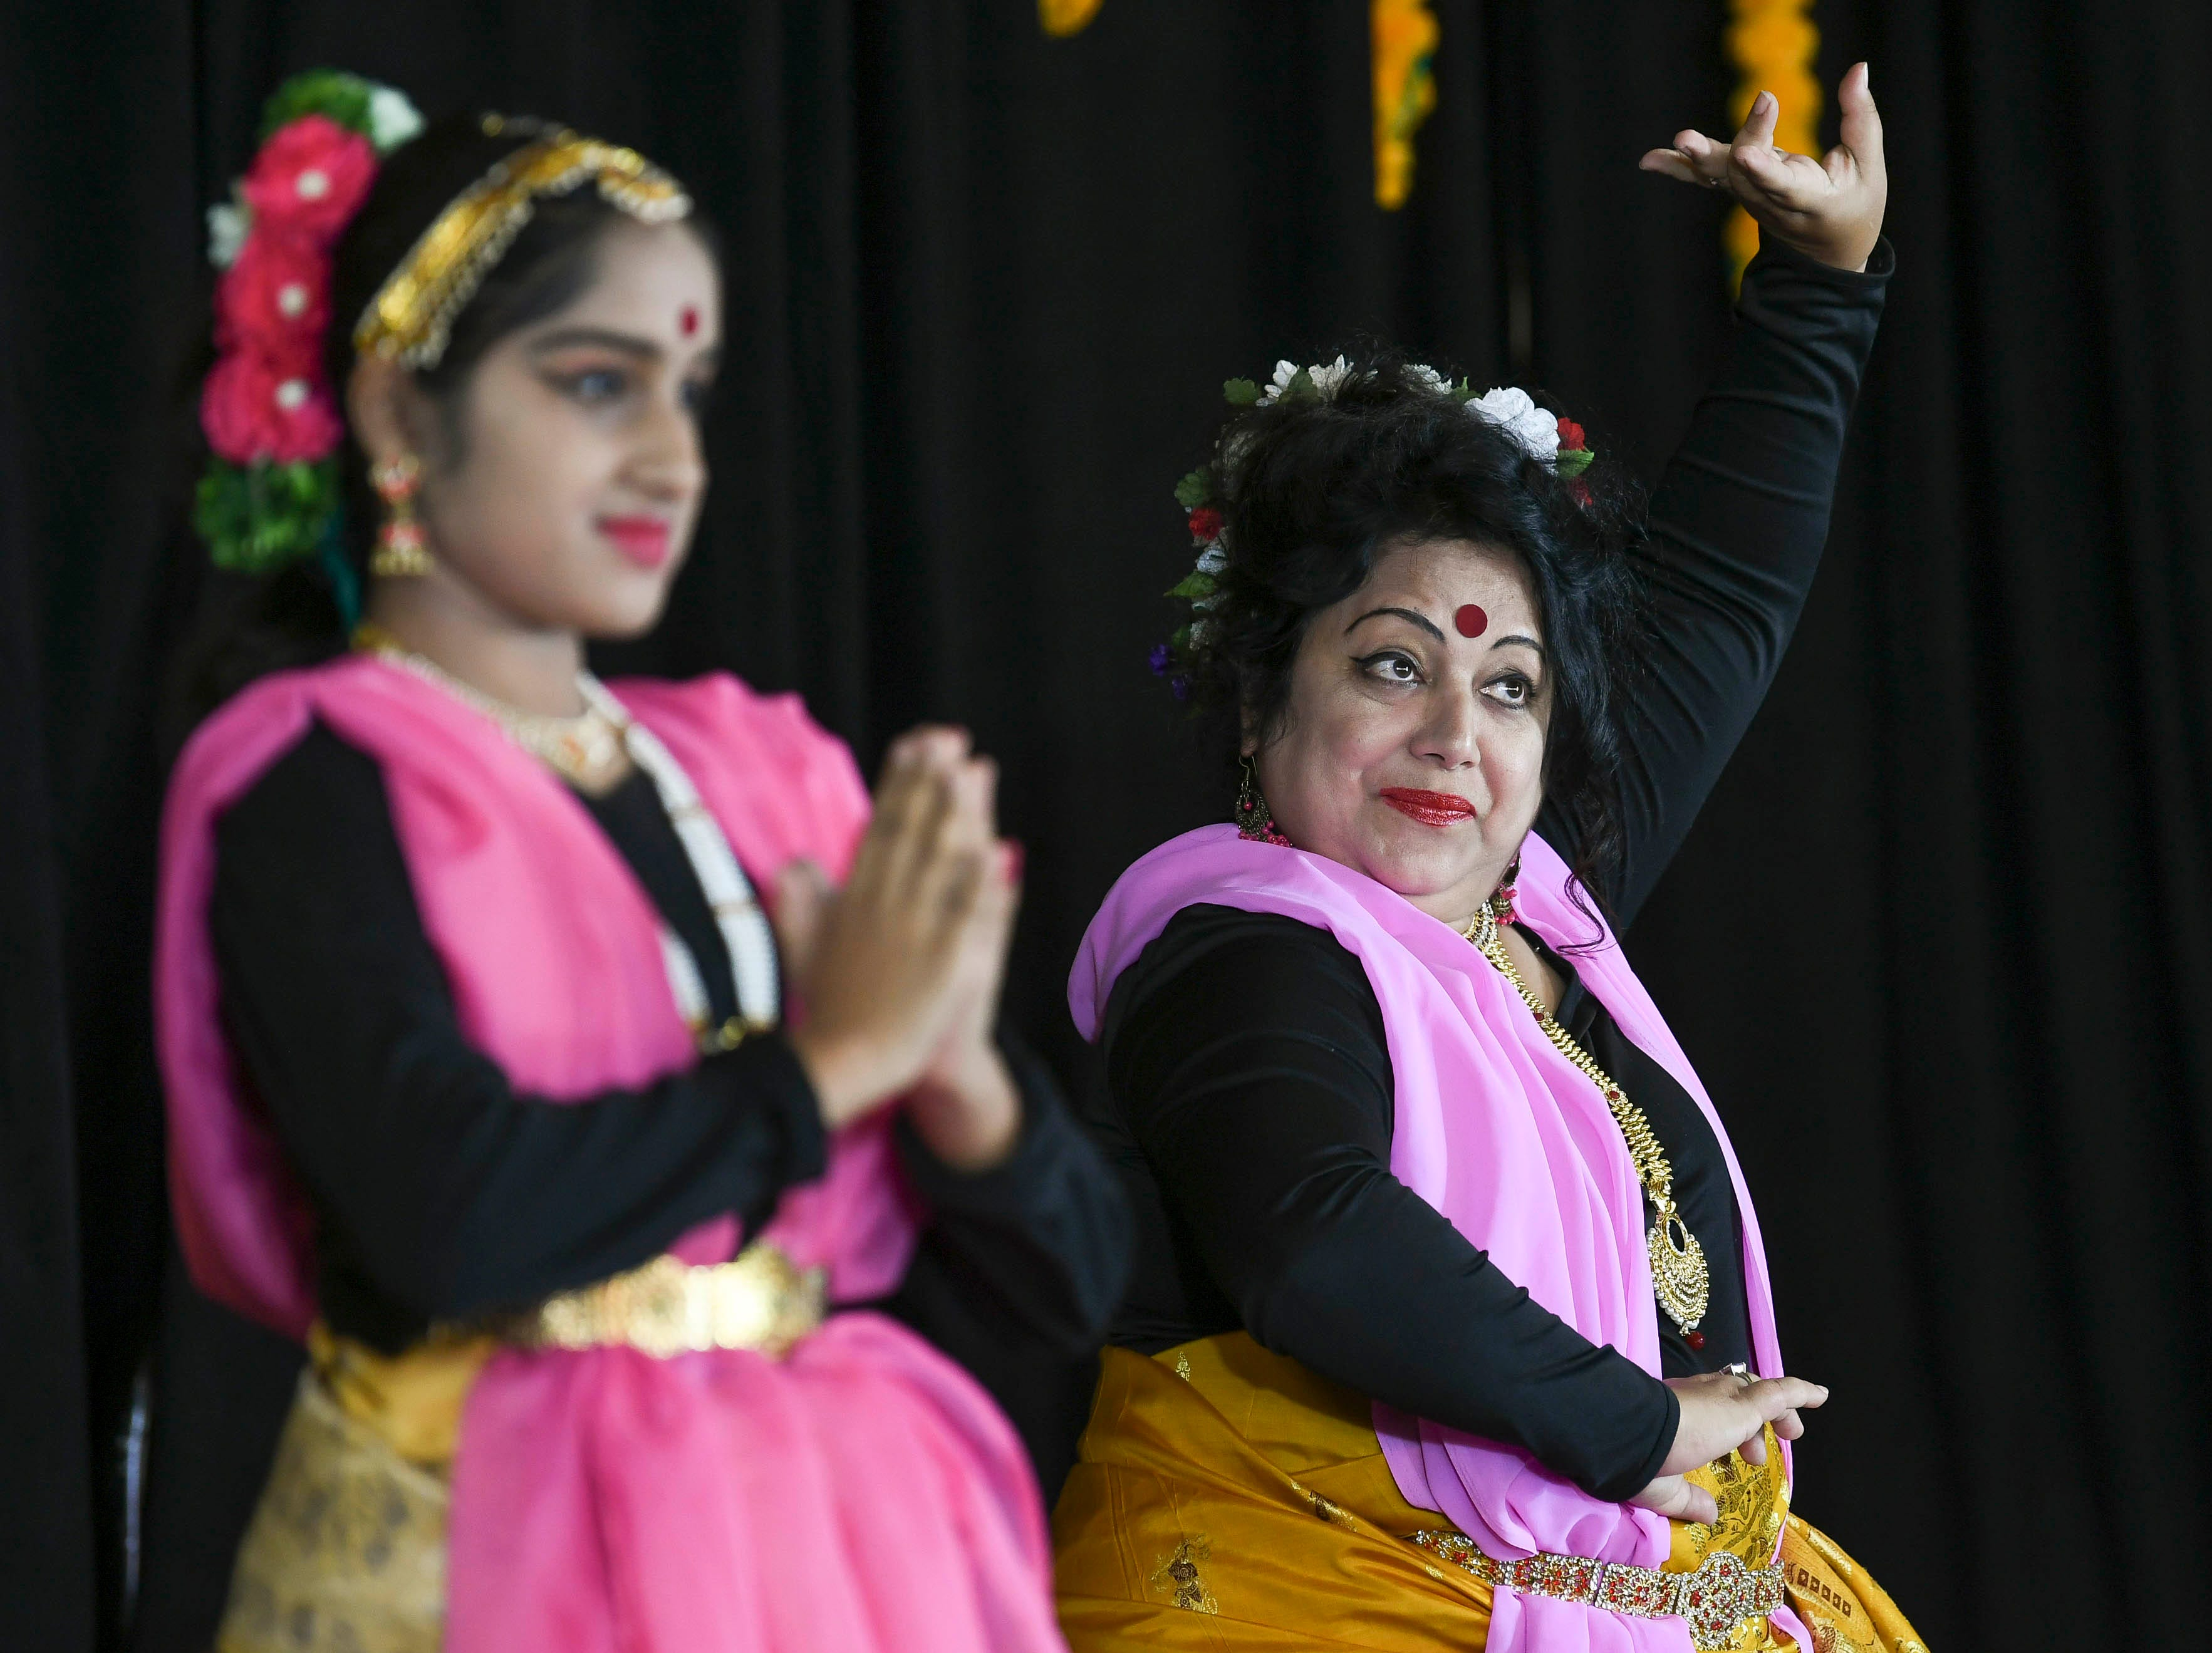 Amrita Mukherjee (right) and her daughter Ankita perform Saturday during Indiafest at Wickham Park's main pavilion.